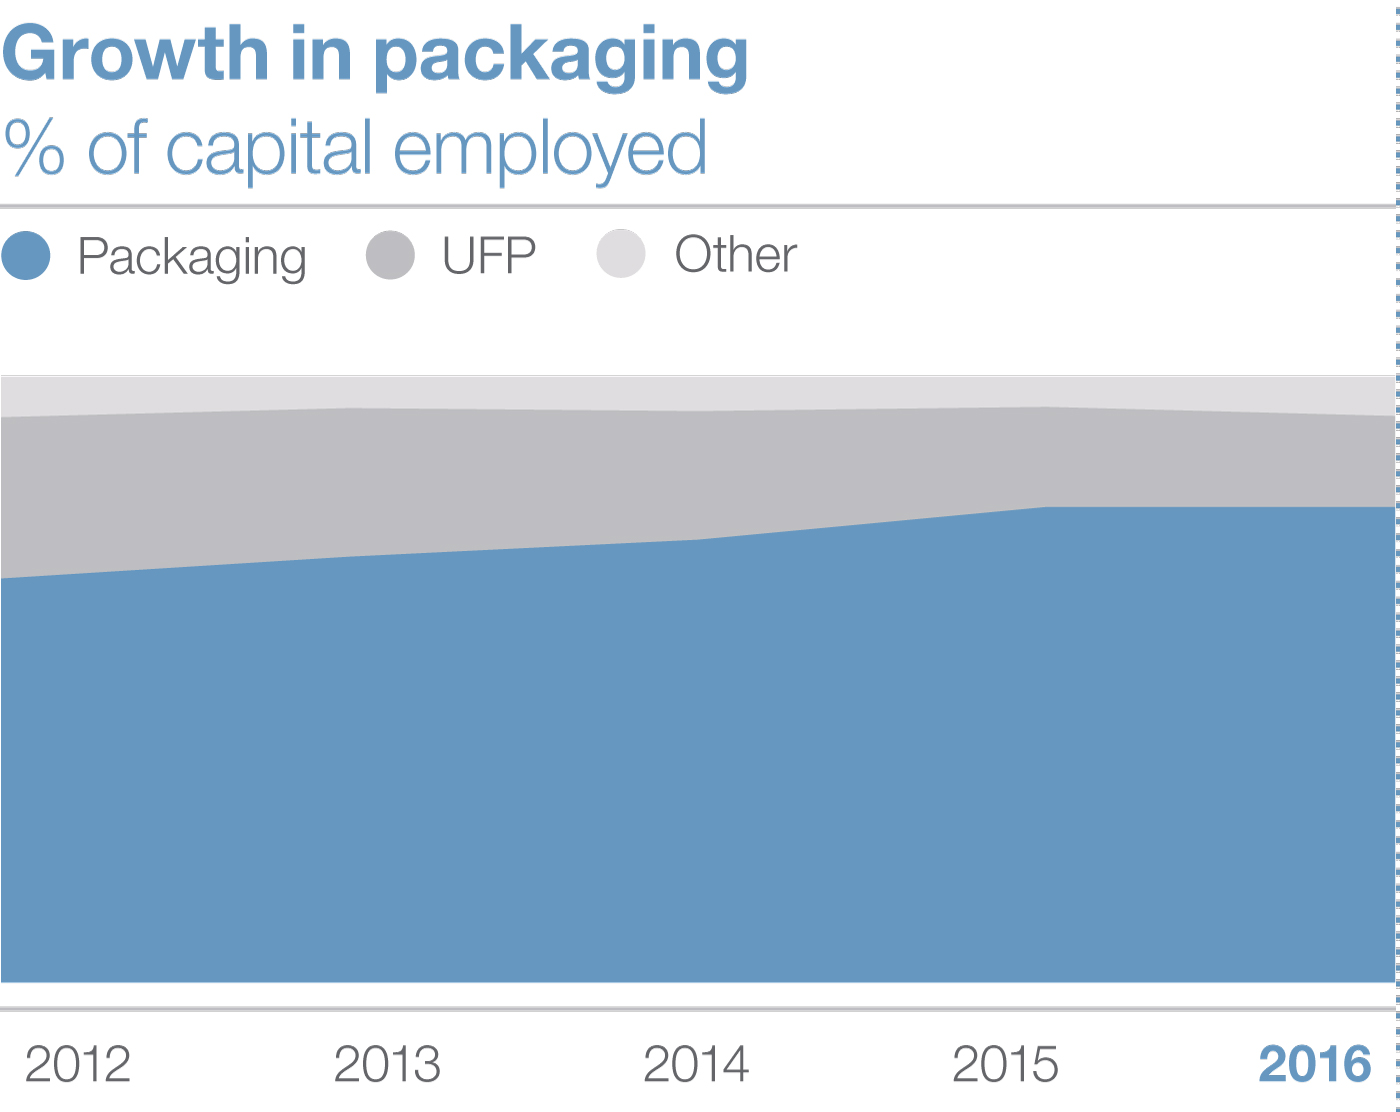 Growth in packaging